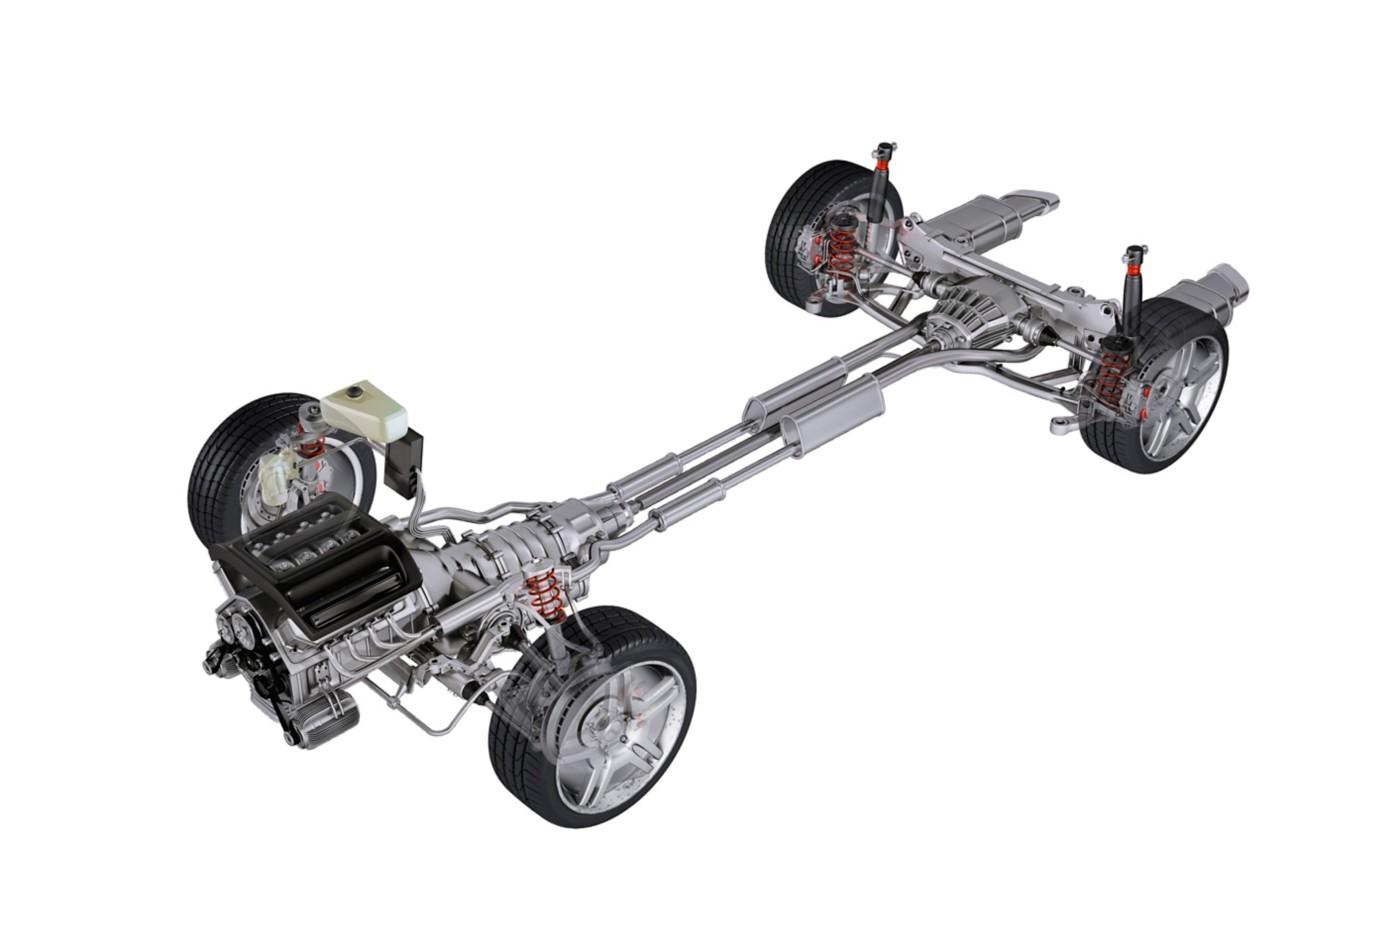 3D illustration of an automotive chassis frame including tires and steering modules